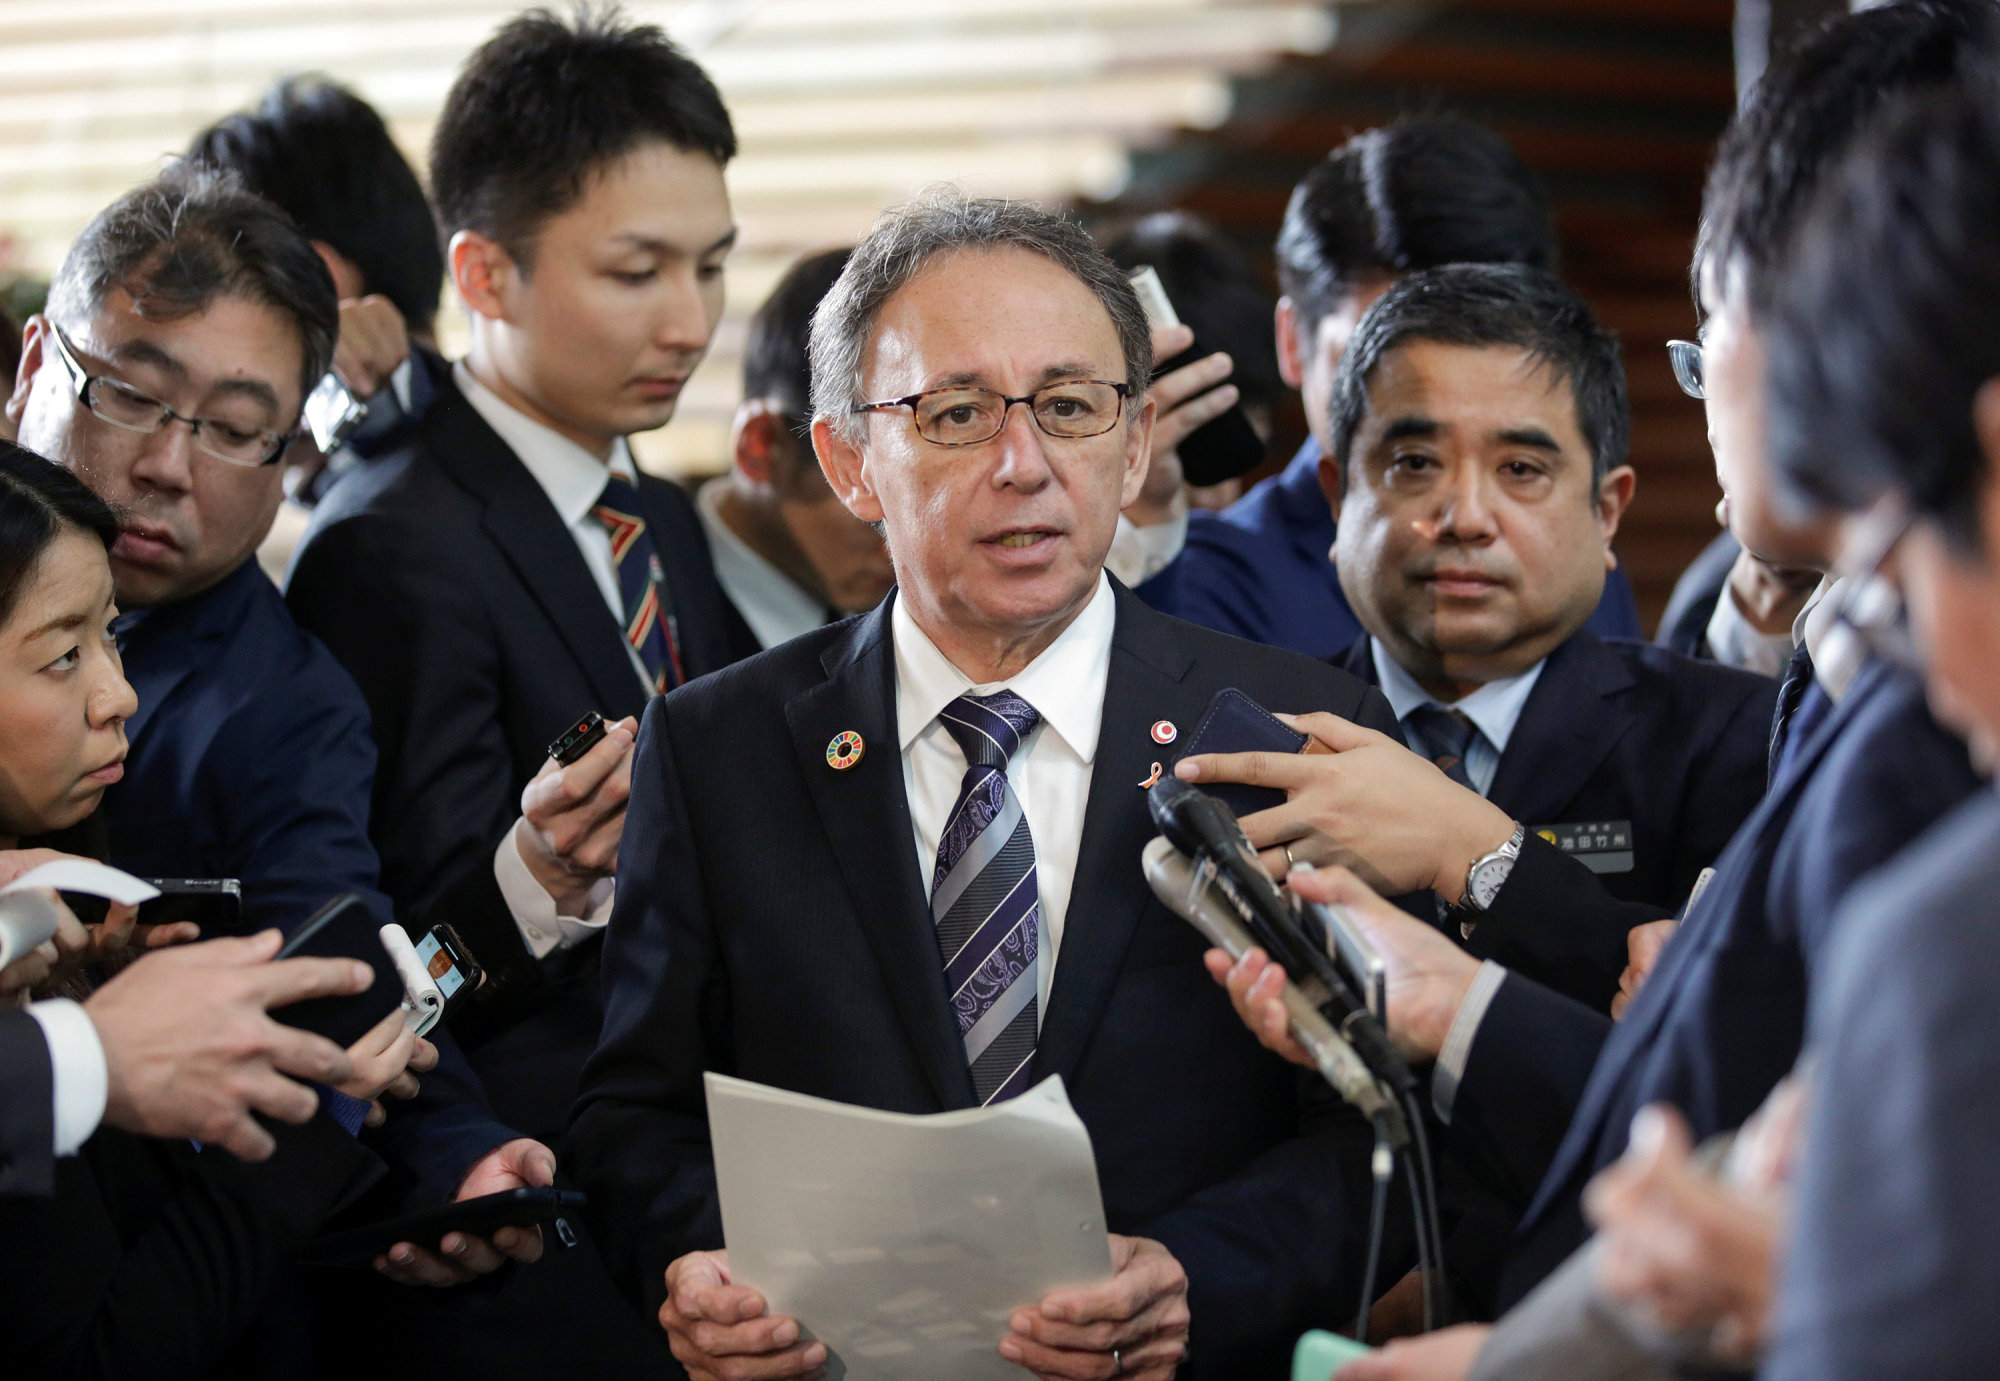 Okinawa Gov. Denny Tamaki speaks to the media after a meeting with Prime Minister Shinzo Abe at the Prime Minister's Office in Tokyo on March 1. | REUTERS